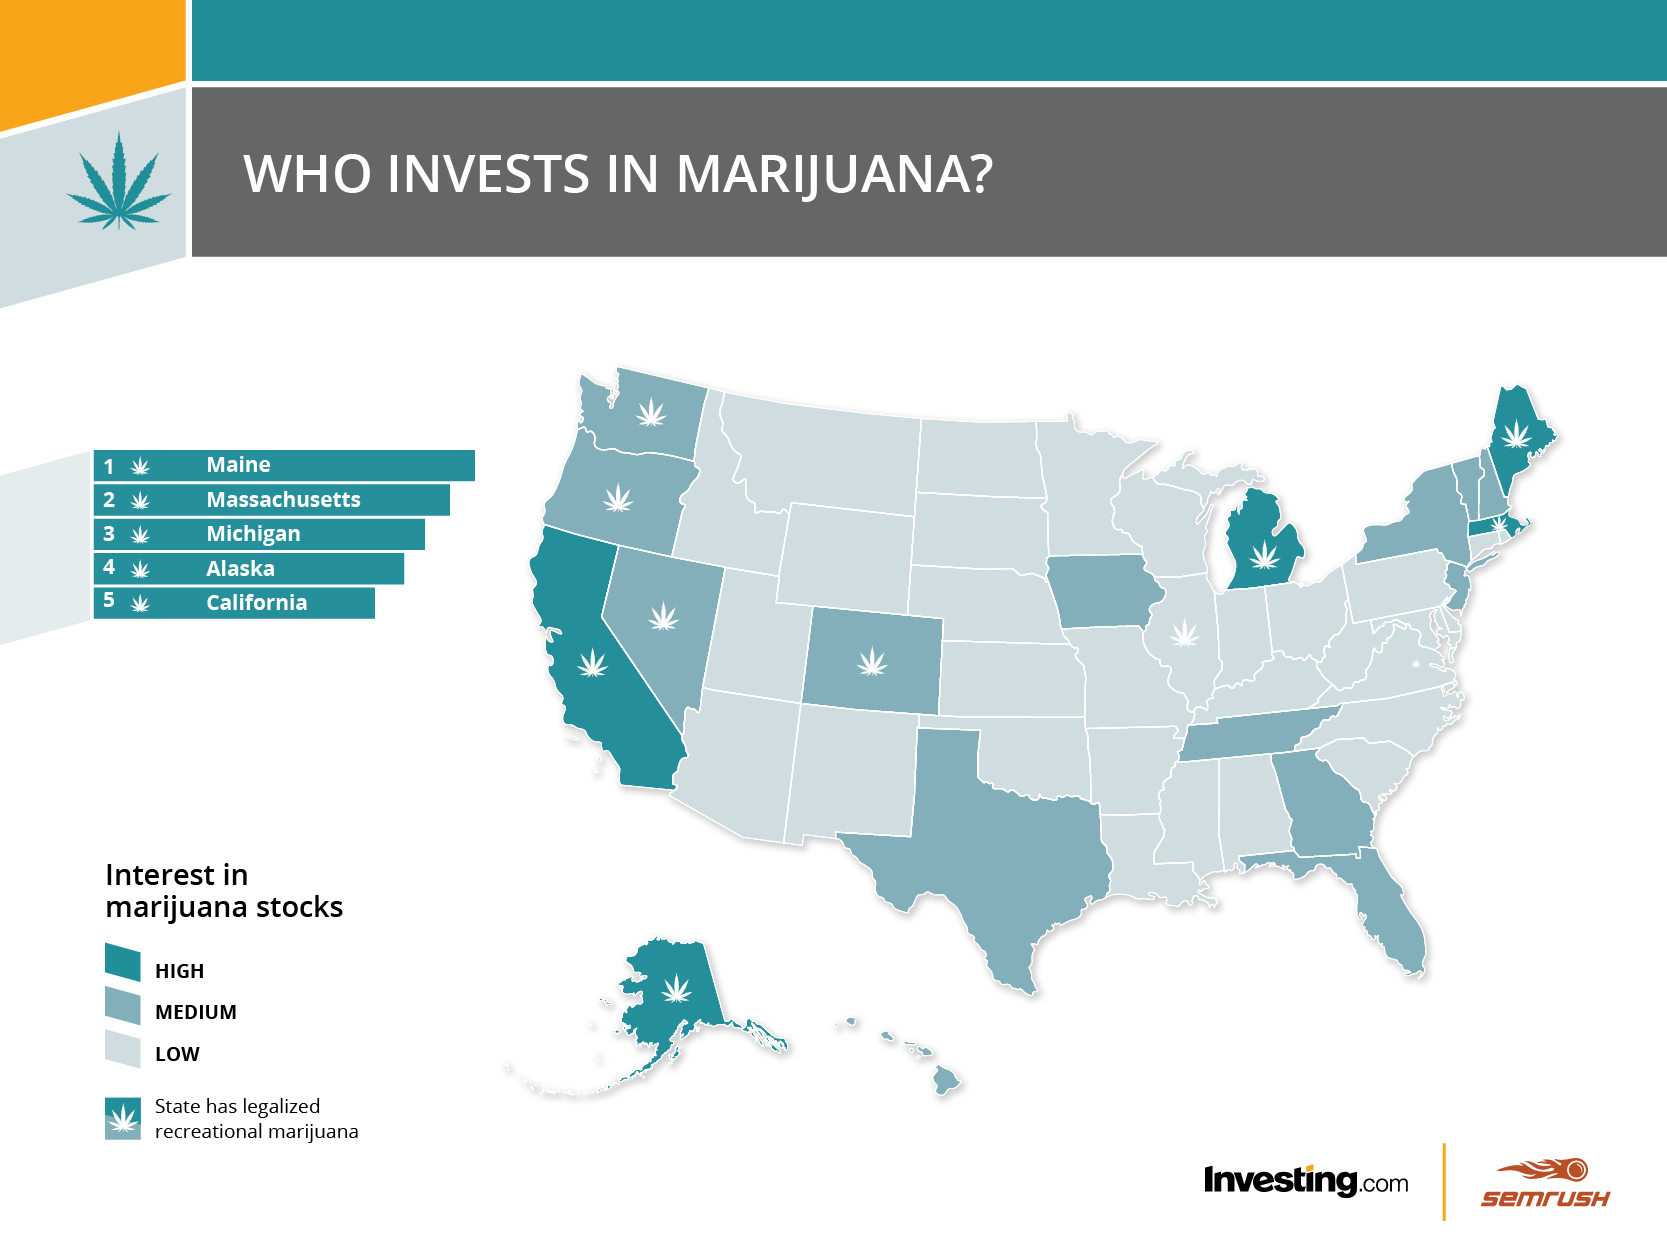 Who Invests In Marijuana